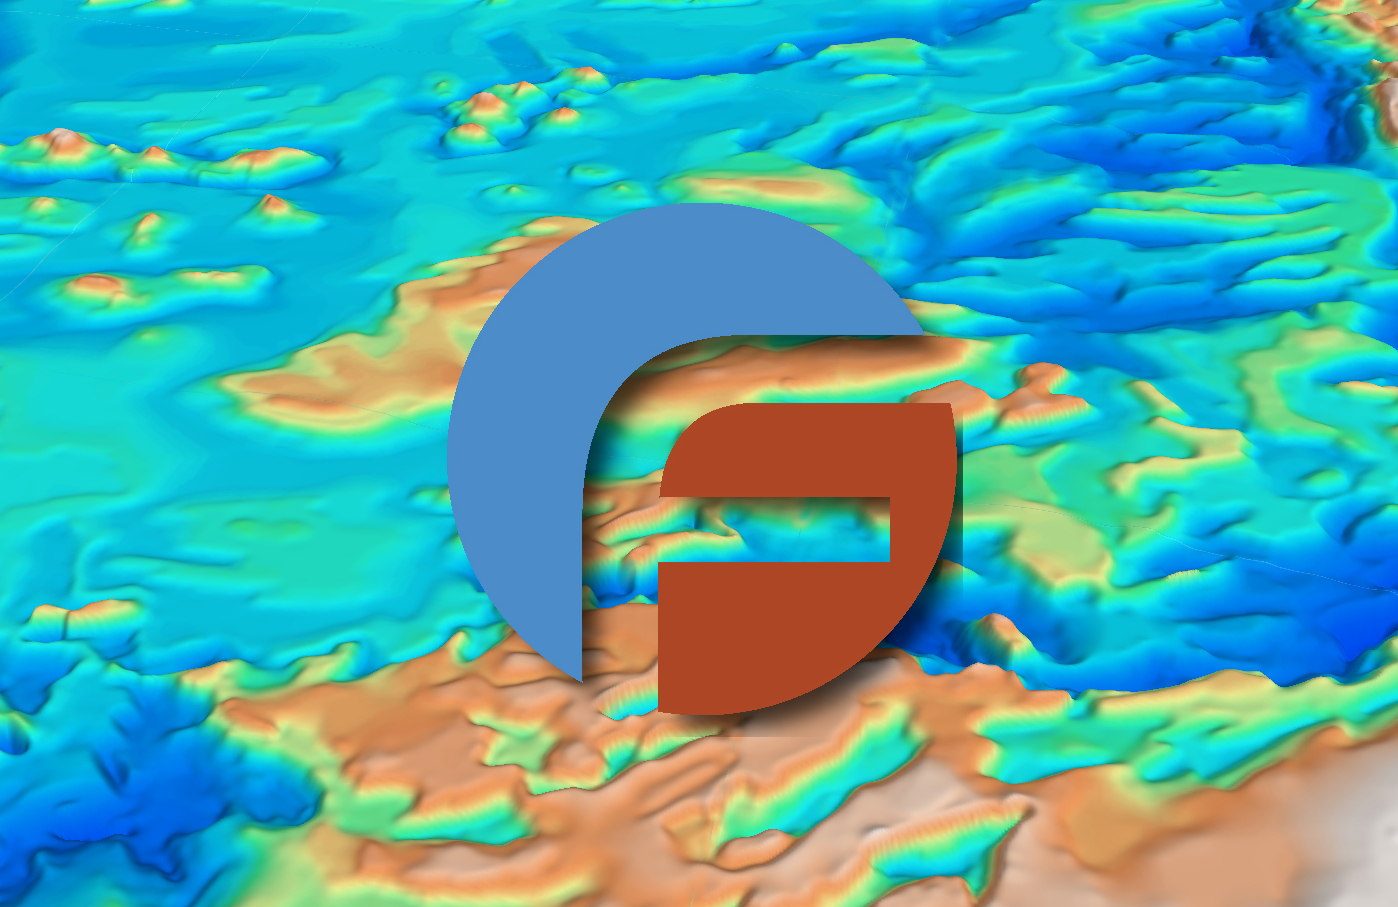 Frogtech SEEBASE™ Studies - The complete portfolio of Frogtech Geoscience's SEEBASE Studies